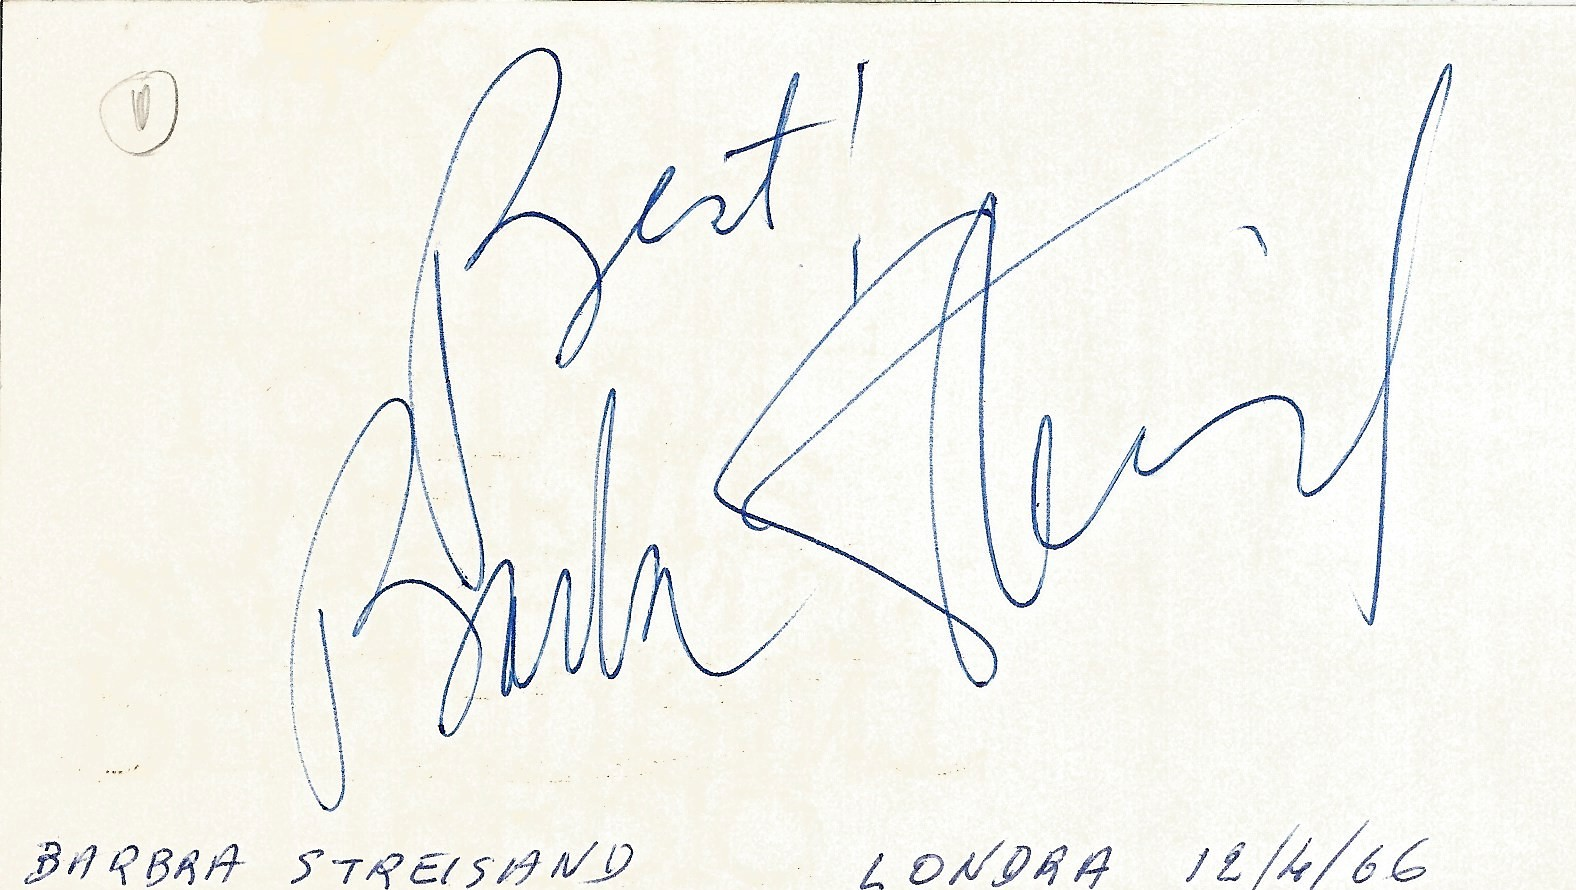 Barbara Streisand signed to clear back of vintage Tiberio Restaurant 4 x 3 inch contact card. From